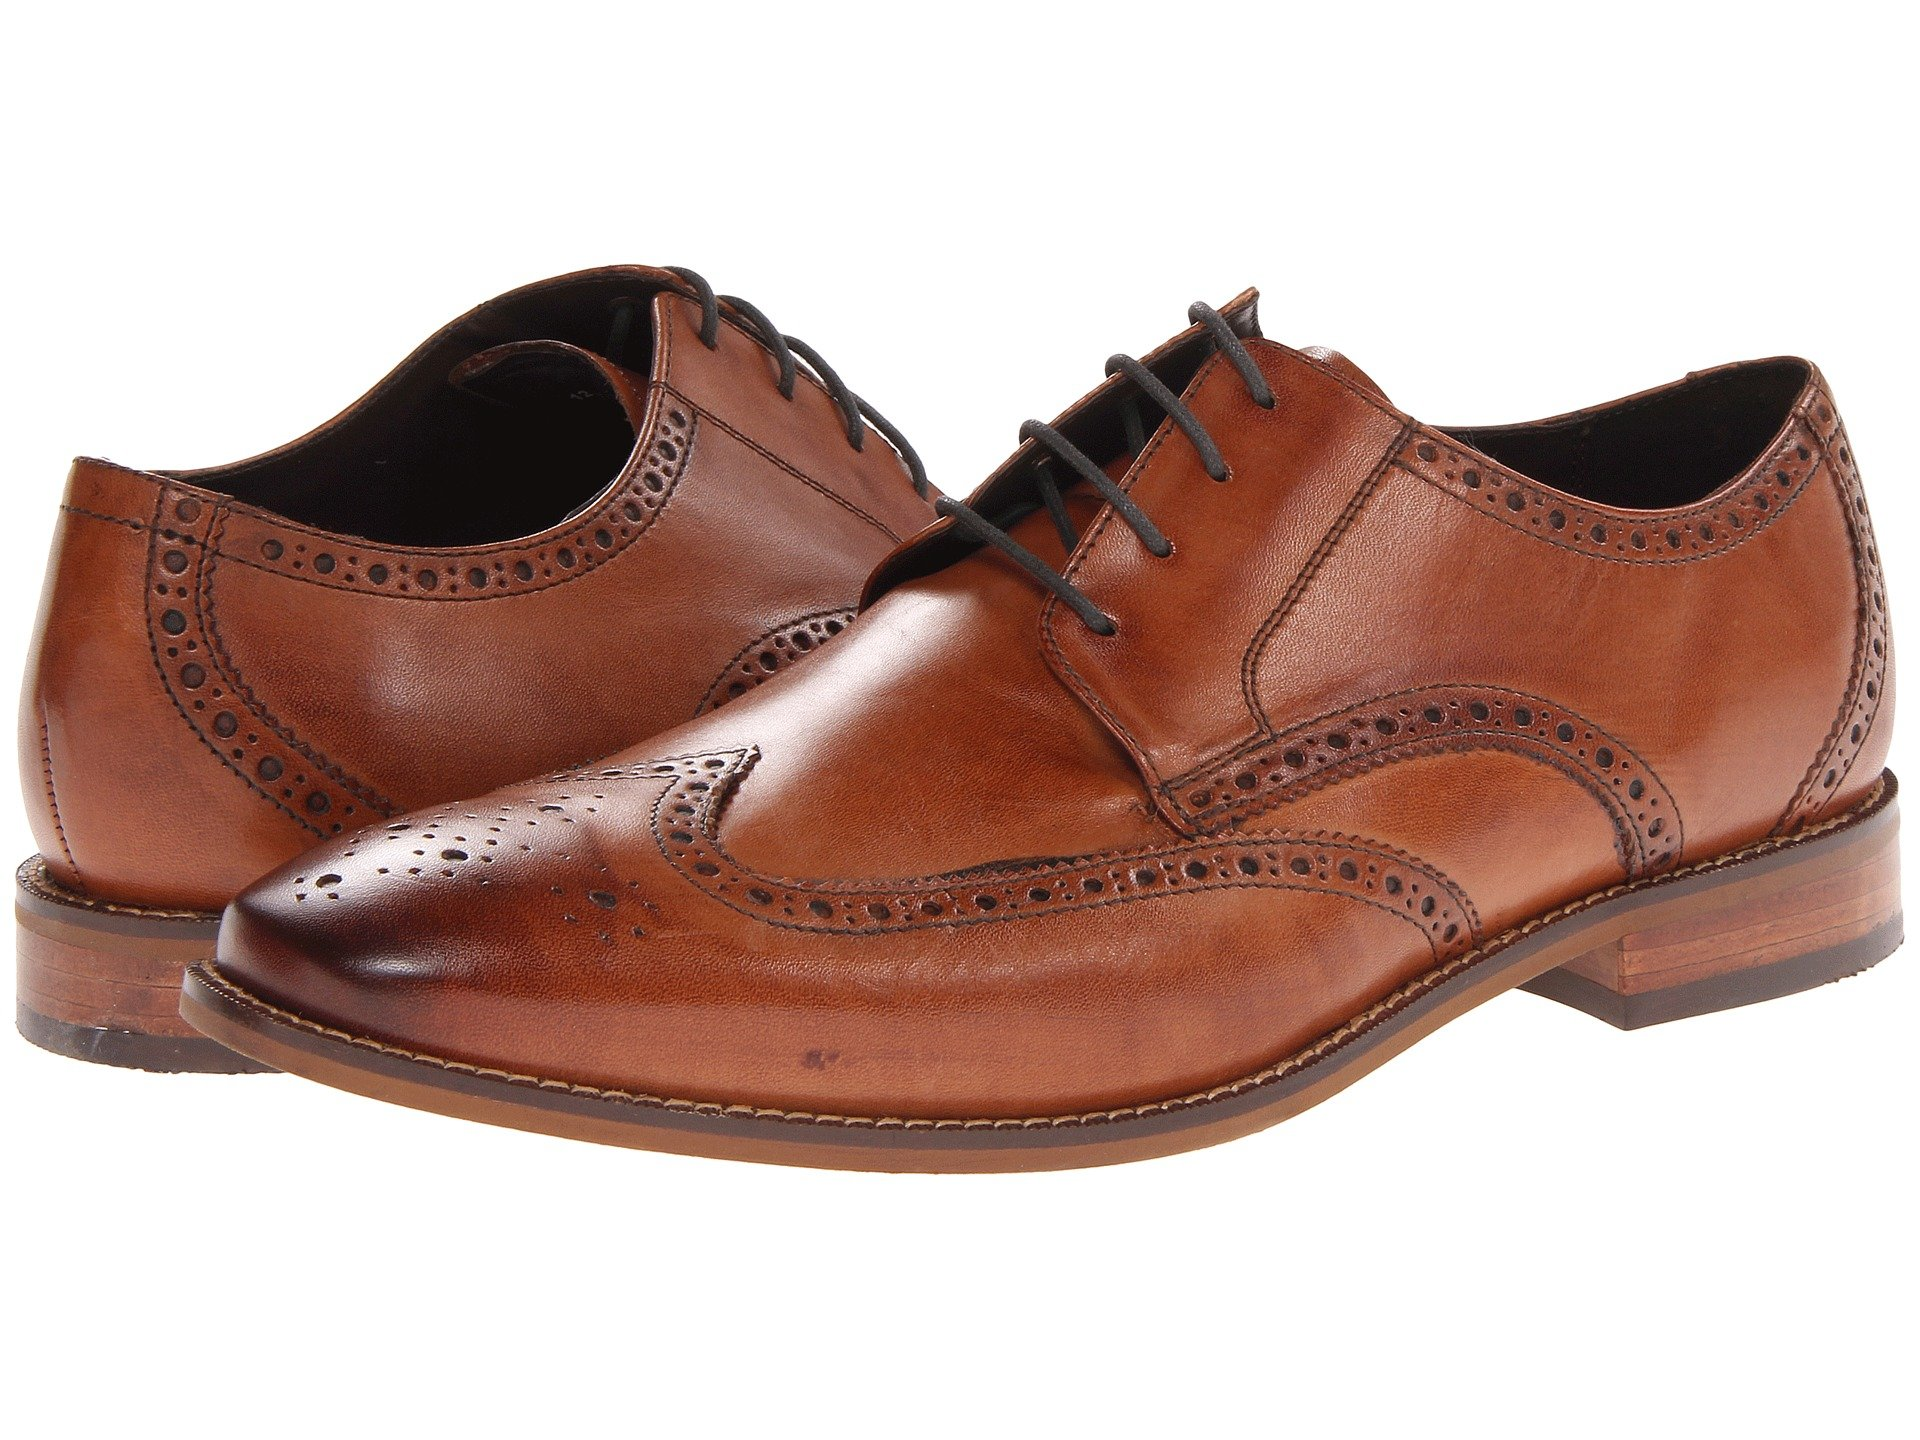 mens shoes oxfords NTHCVPD